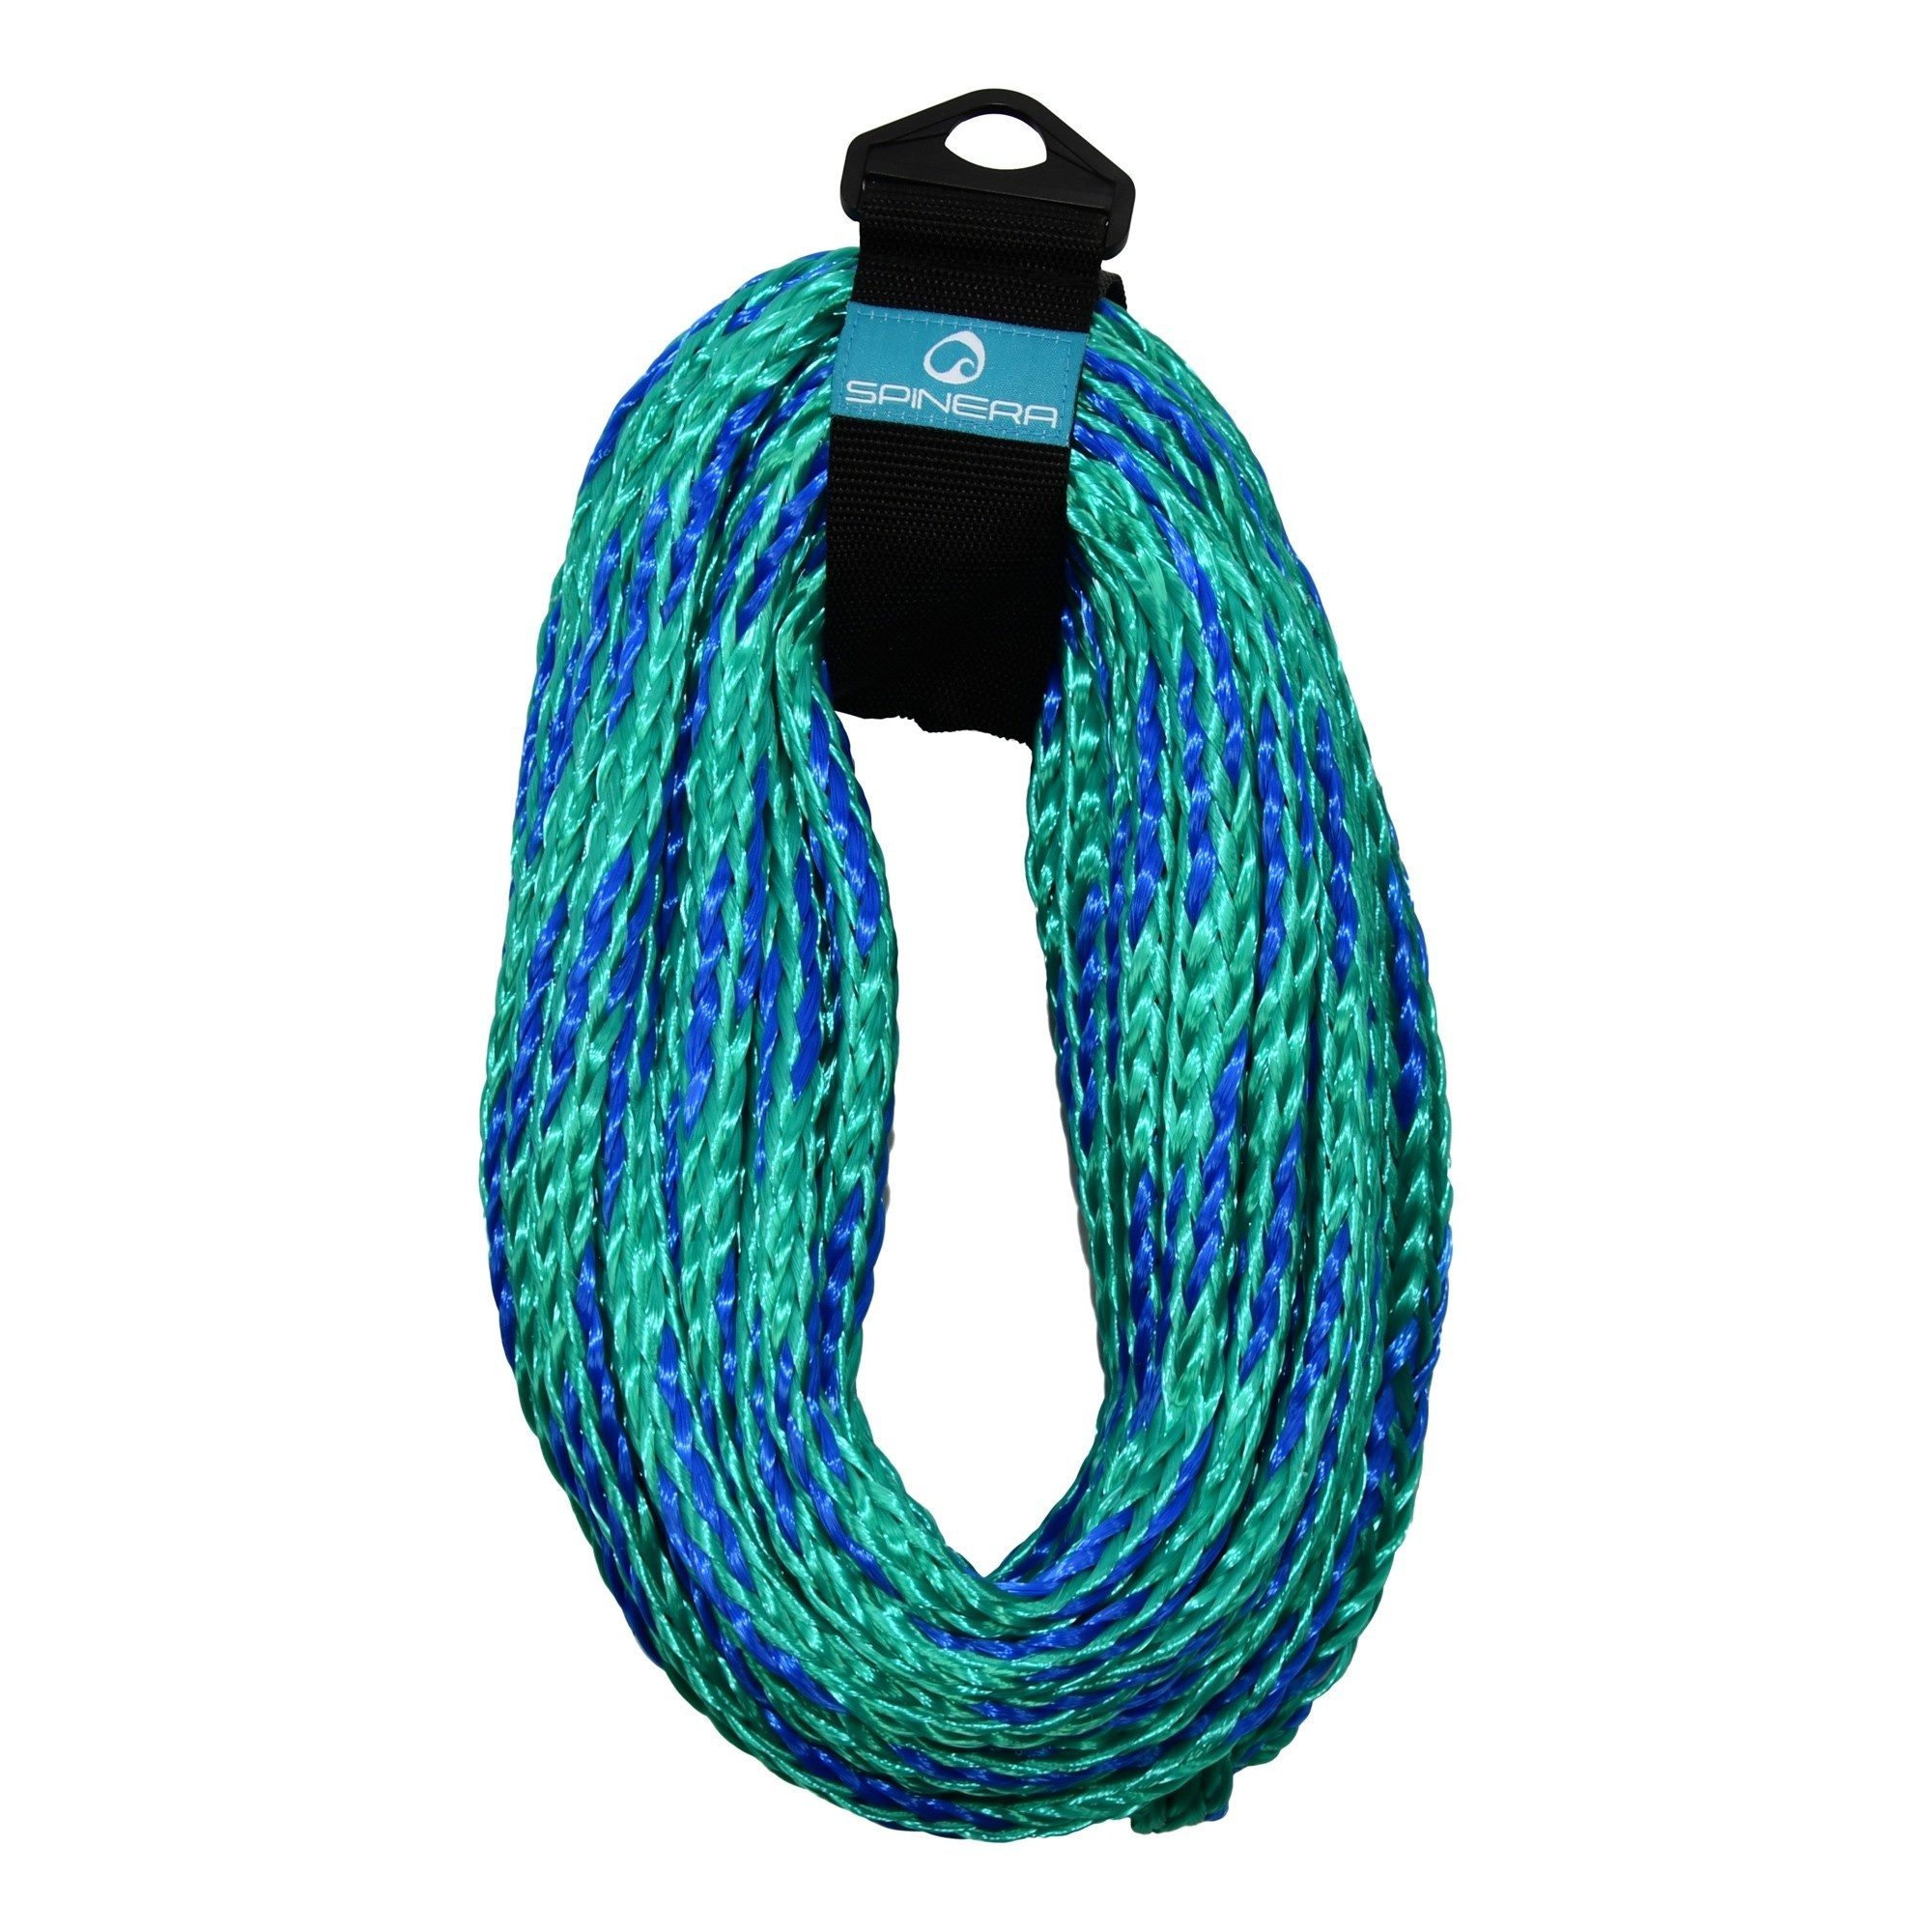 Towable Rope 4 - Four persons